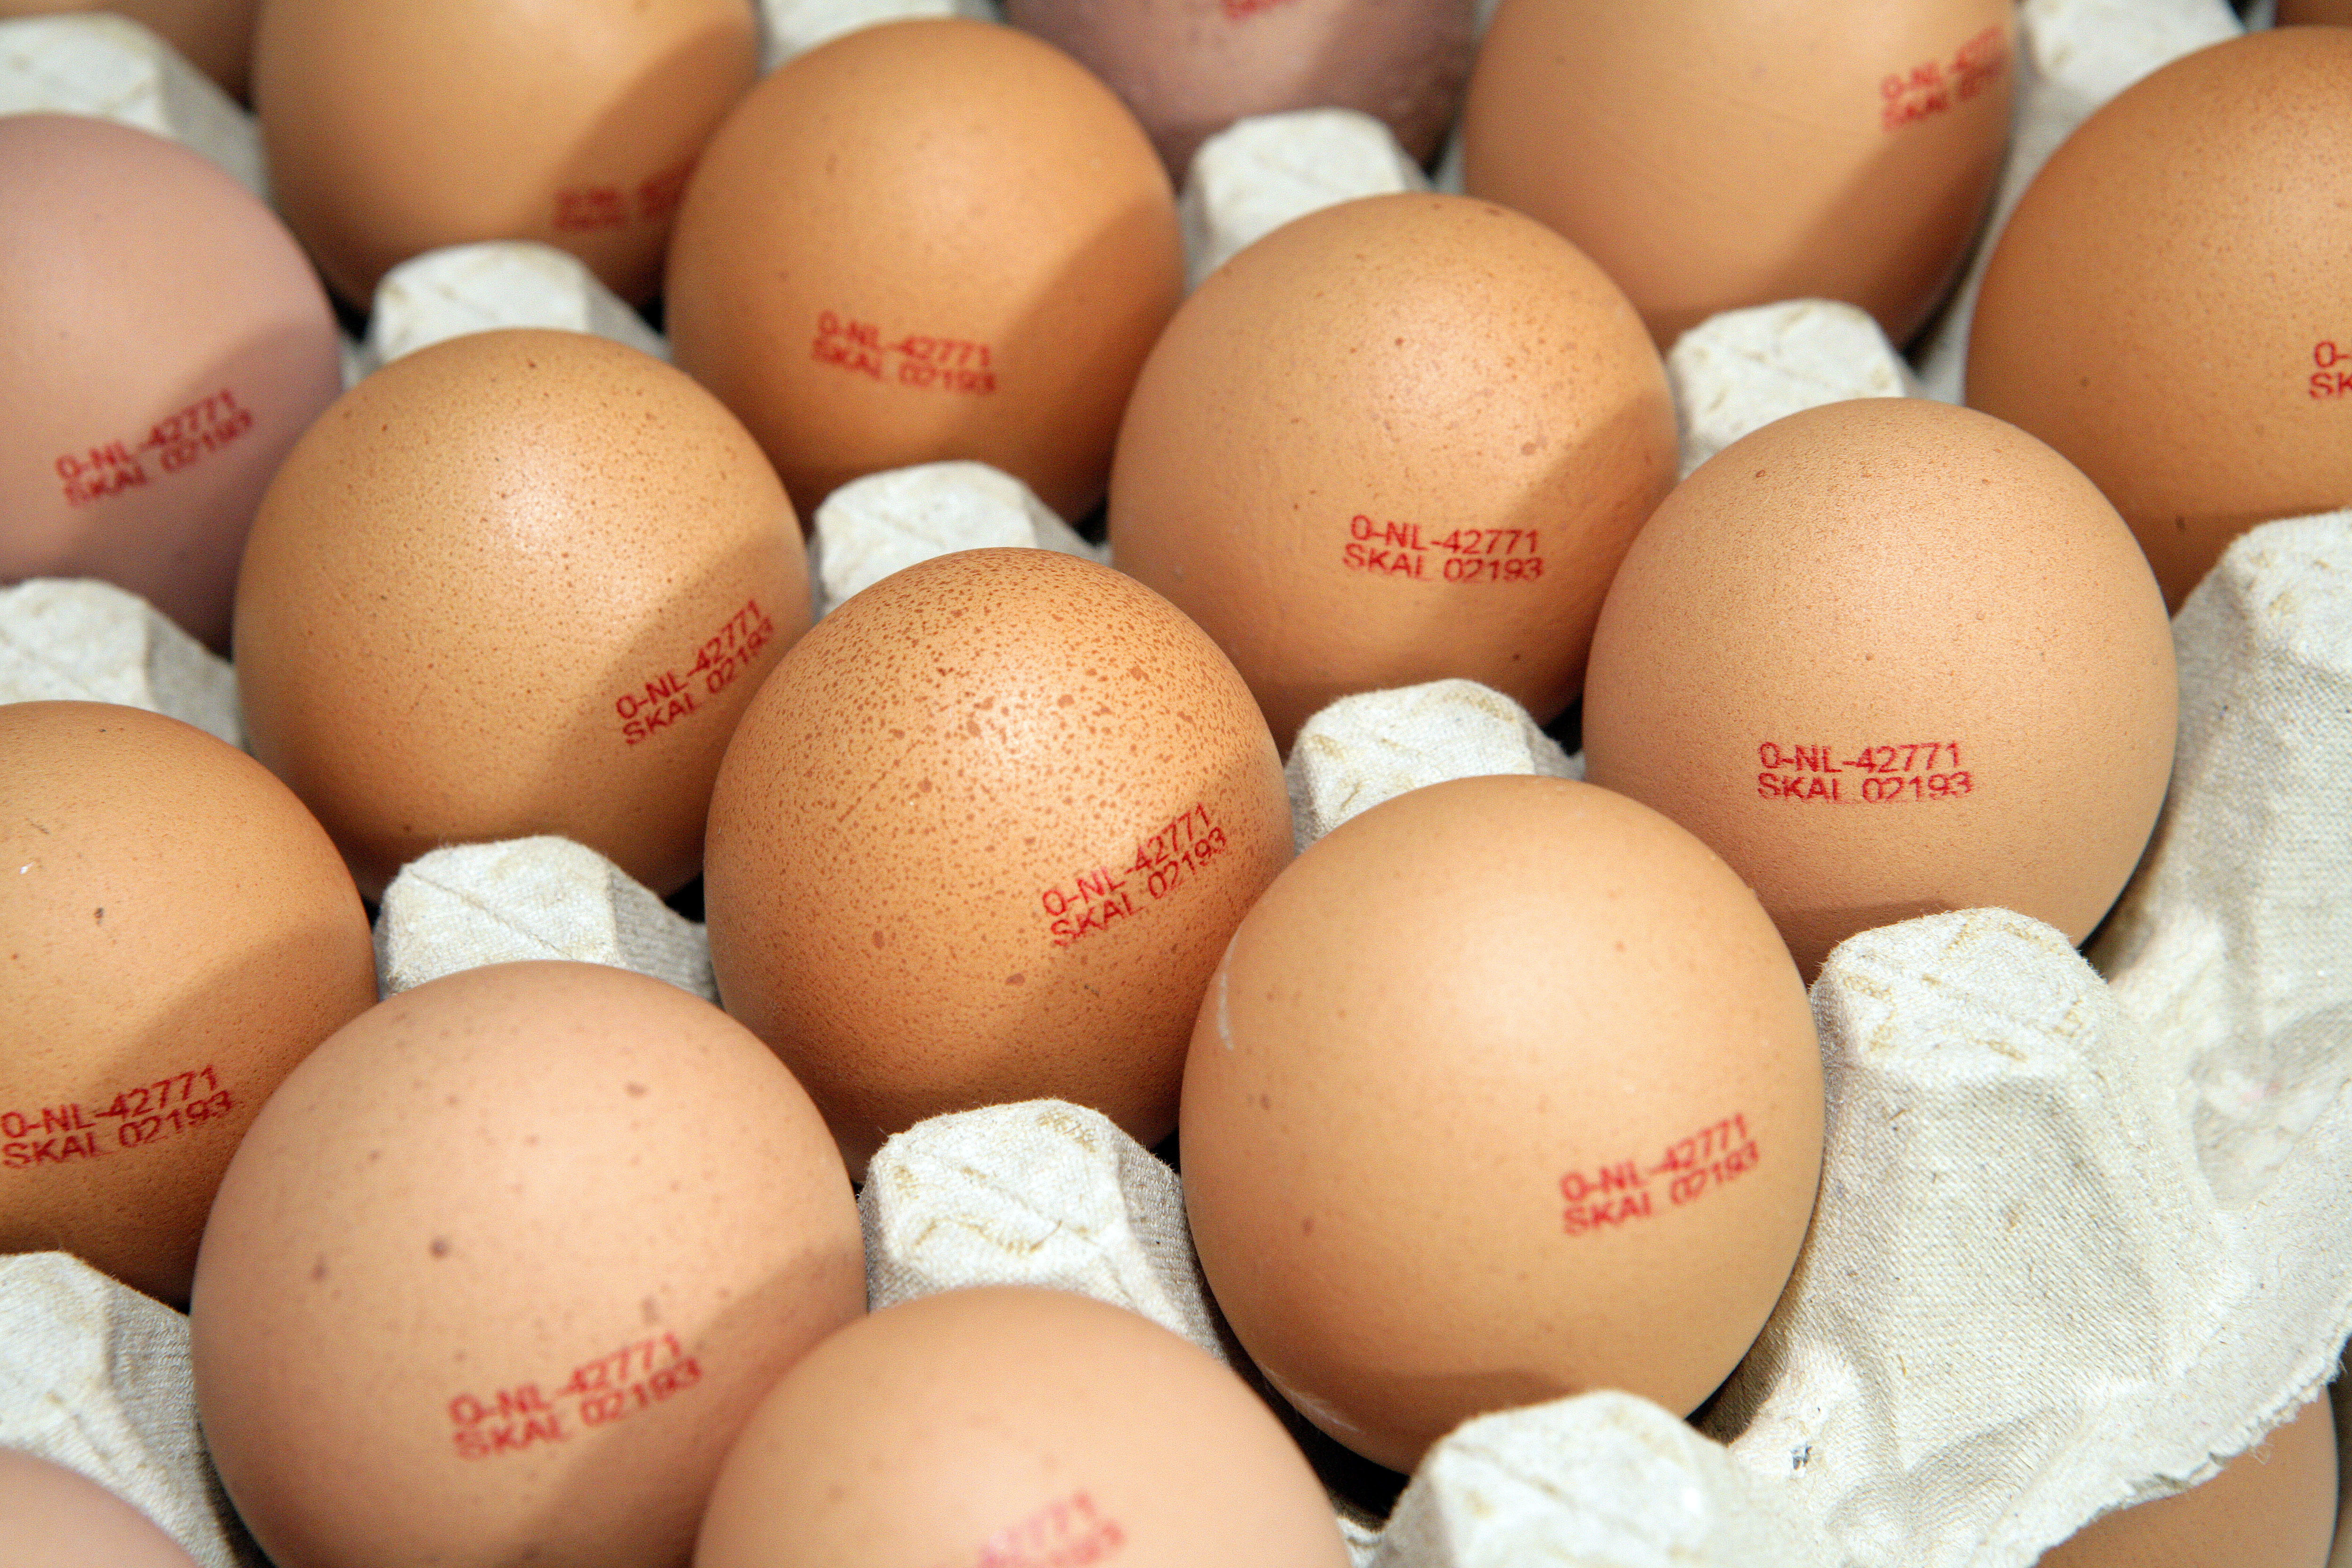 James Gigg is accused of passing off eggs as free-range when they were not. He is also said to have kept more than the permitted number of hens in 2 of his henhouses. Photo: Henk Riswick